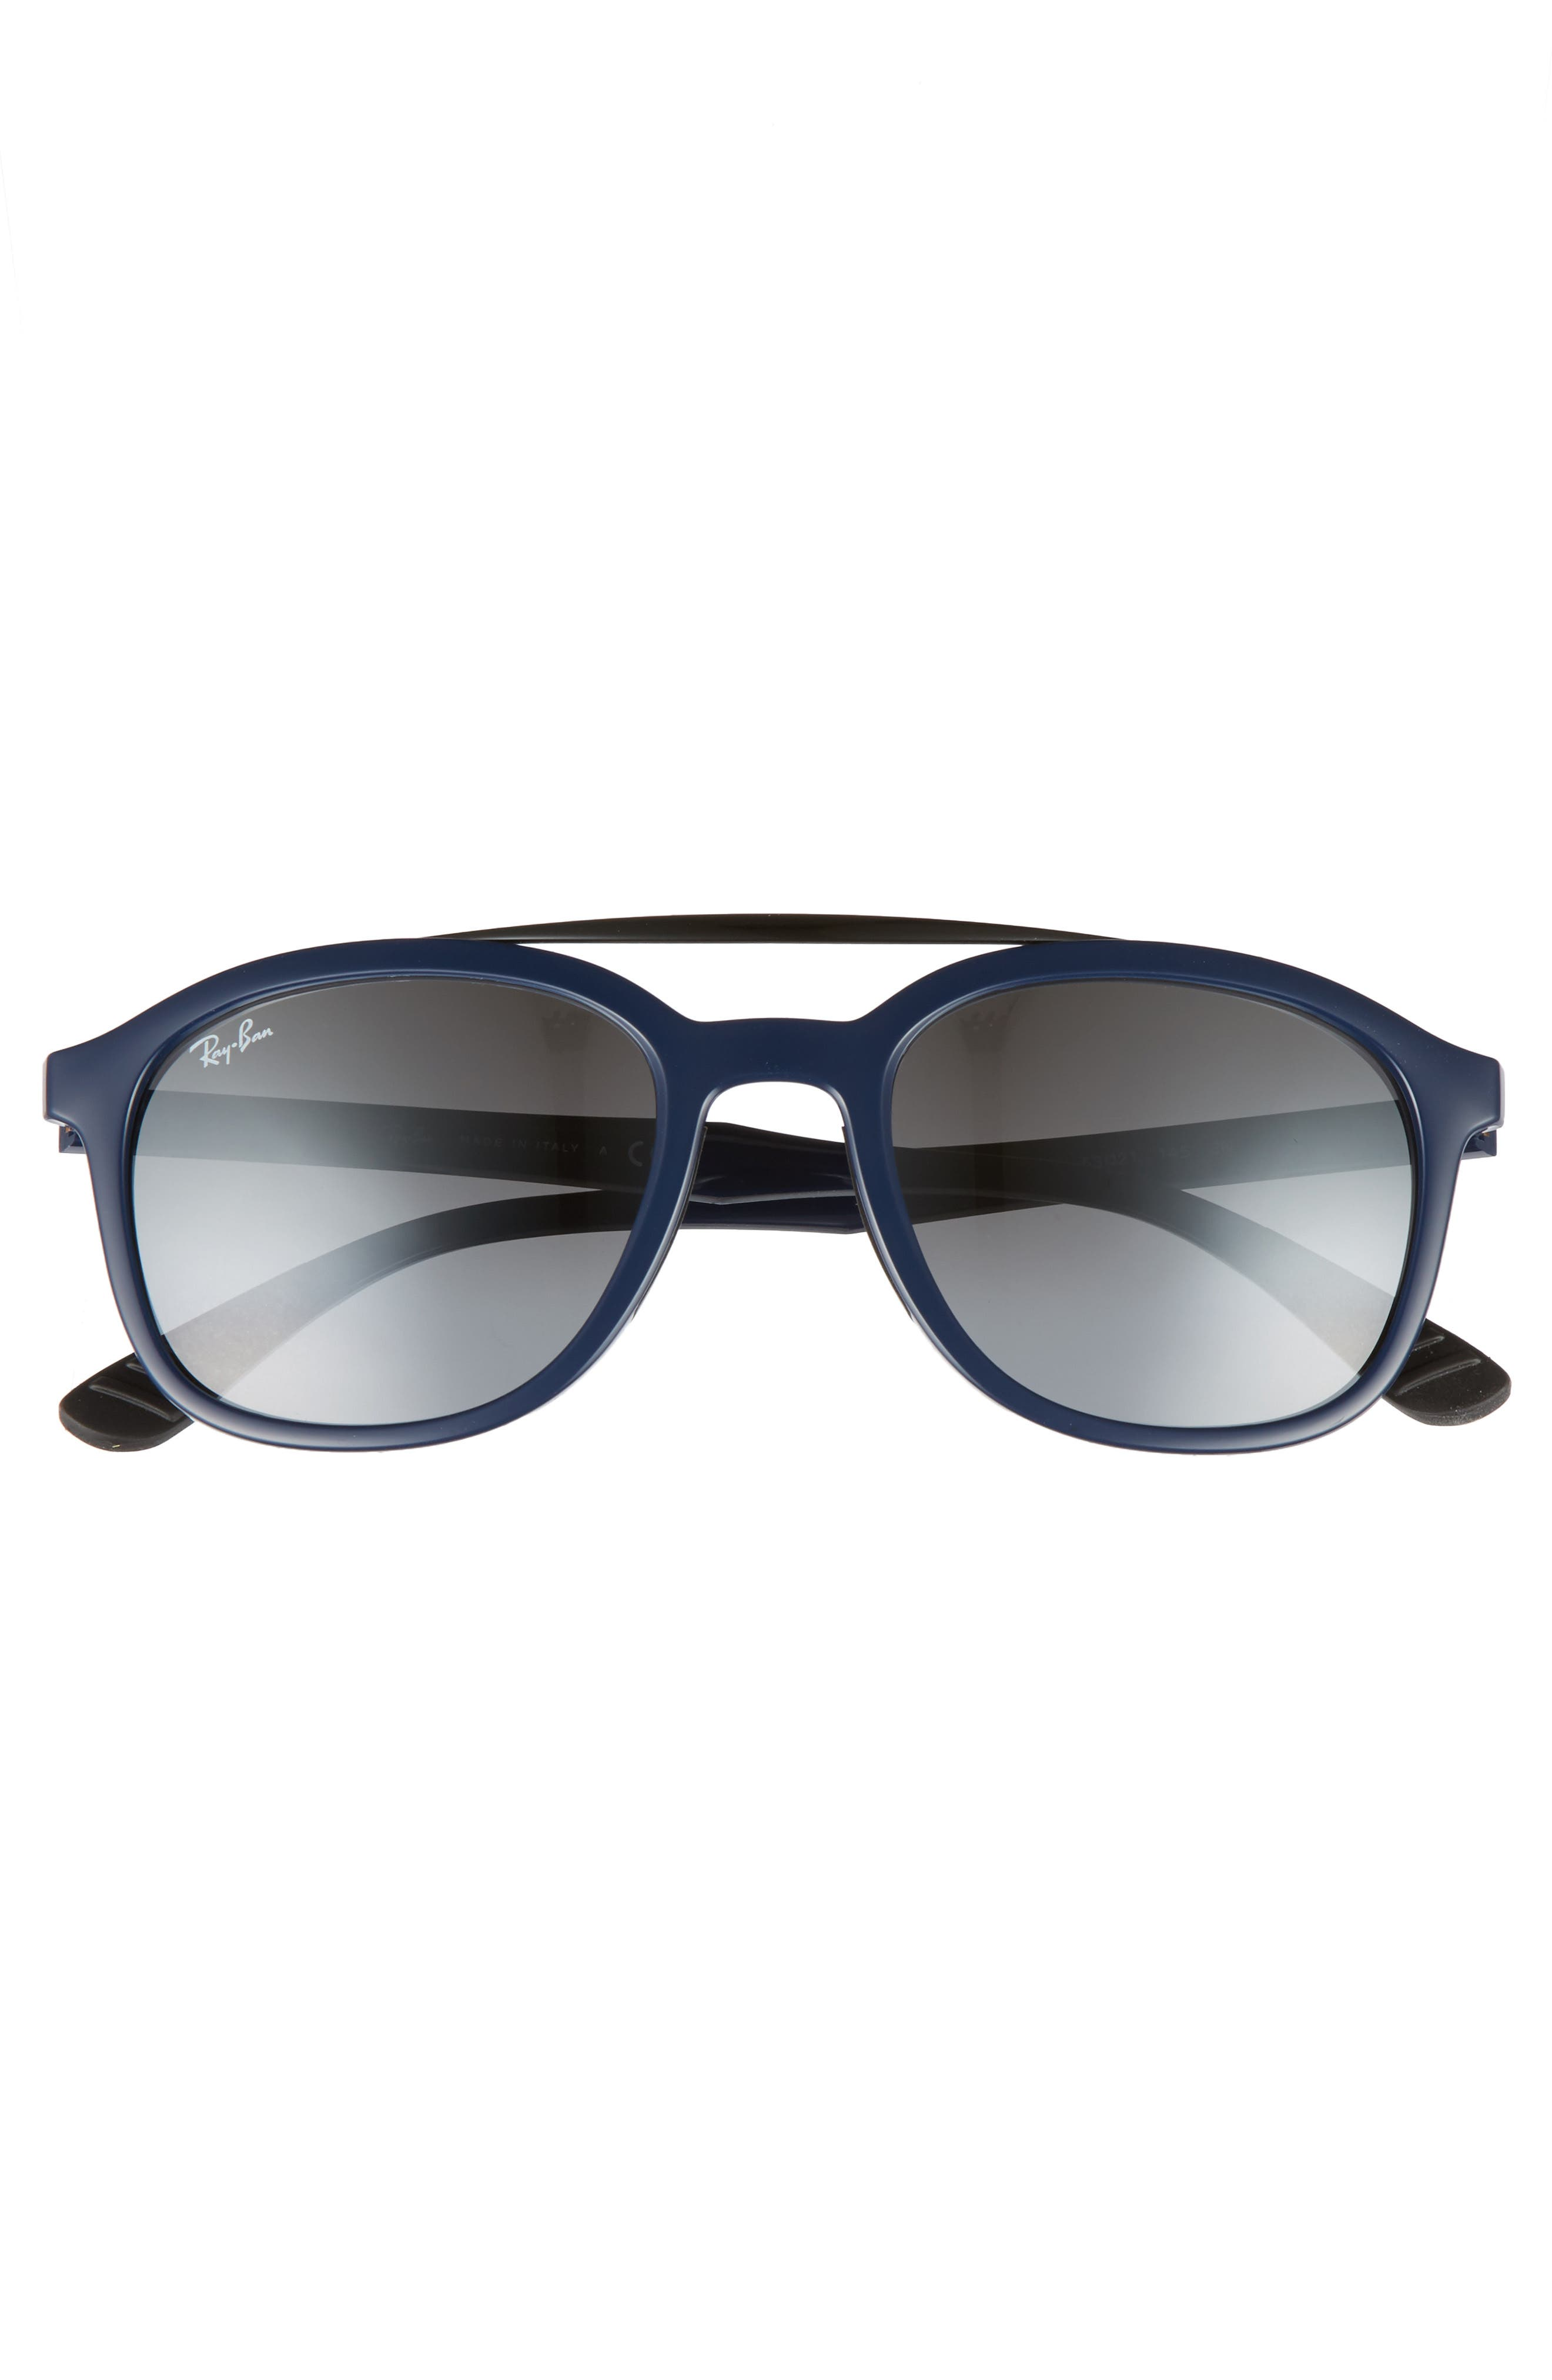 Active Lifestyle 53mm Sunglasses,                             Alternate thumbnail 2, color,                             BLUE